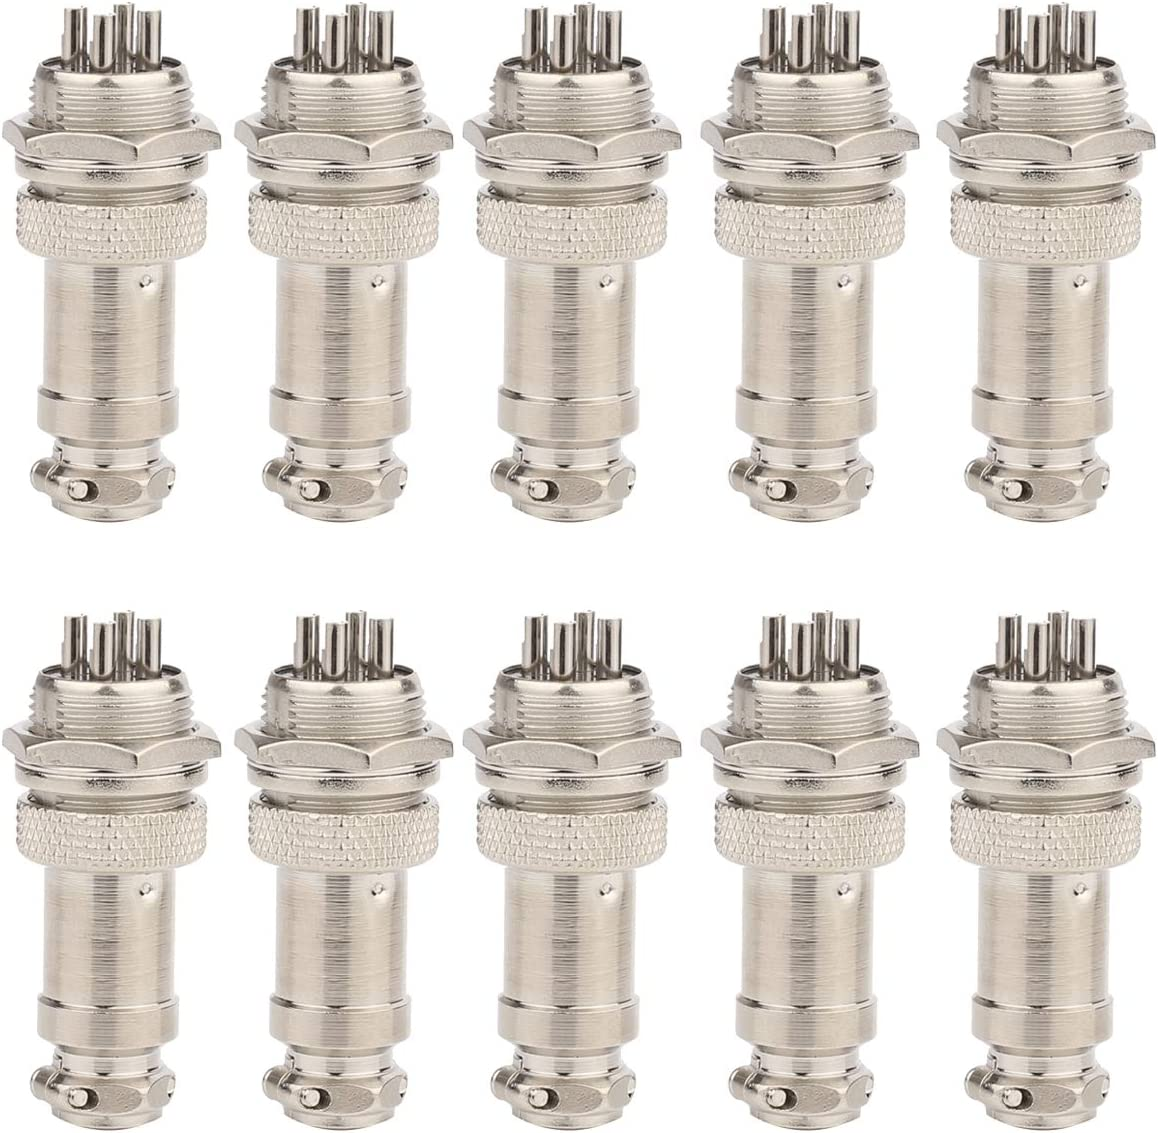 Clyxgs Aviation Plug Connector 4-Pin Male Female Panel Metal Wire Panel Connector 16mm Socket 10PCS